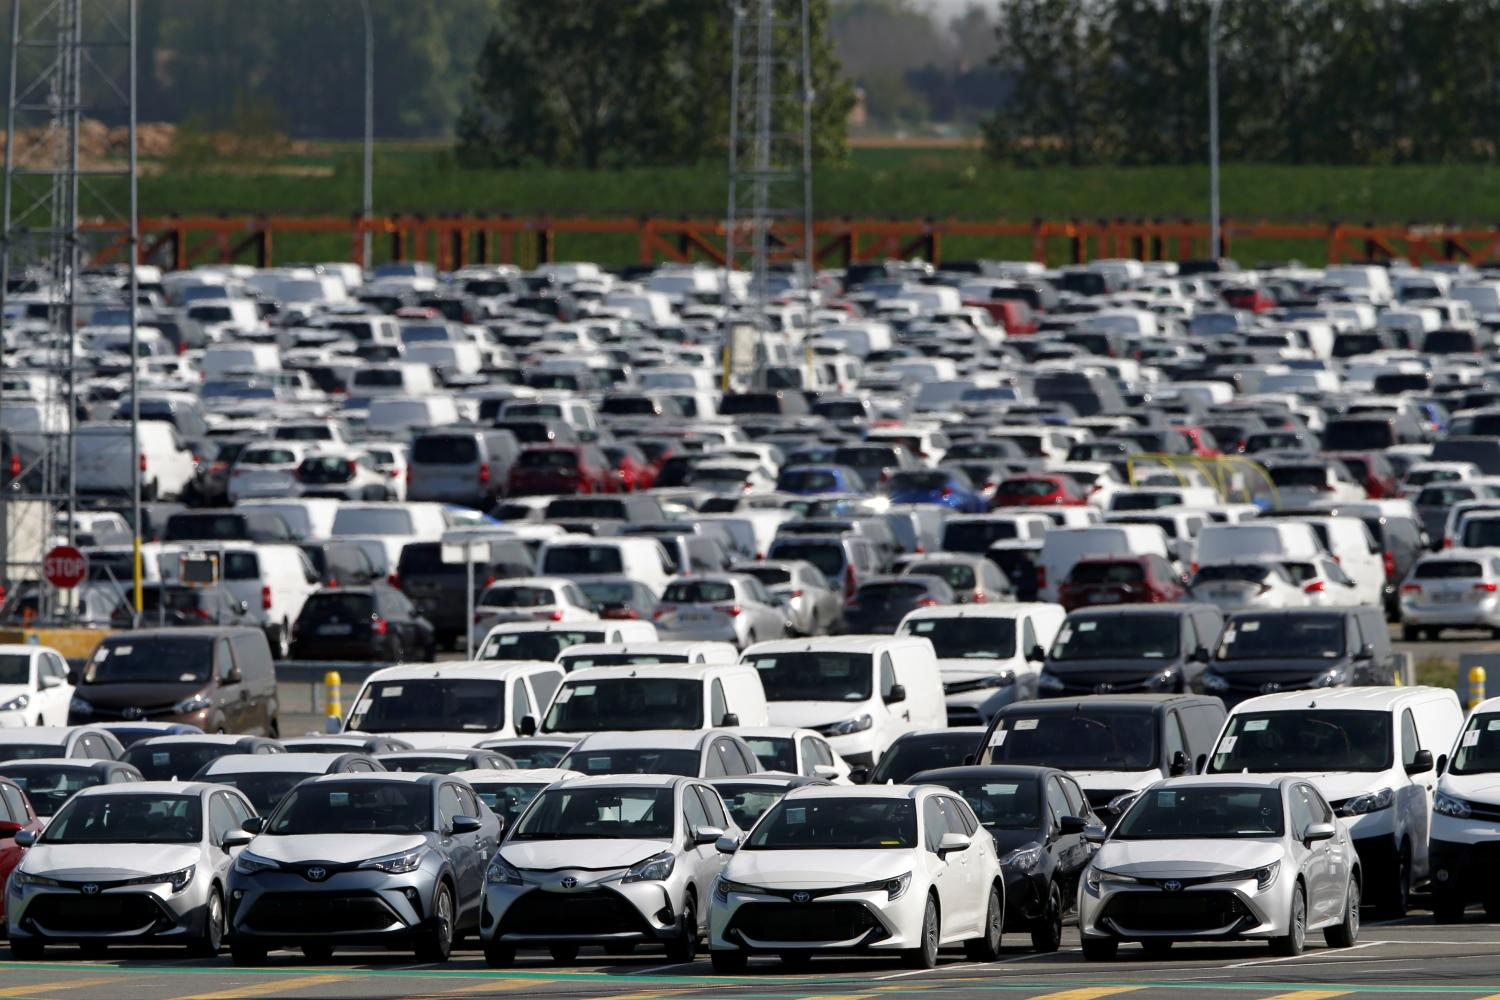 New cars are seen parked at Toyota Motor Corp's plant in Onnaing, France.(Photo: Reuters)